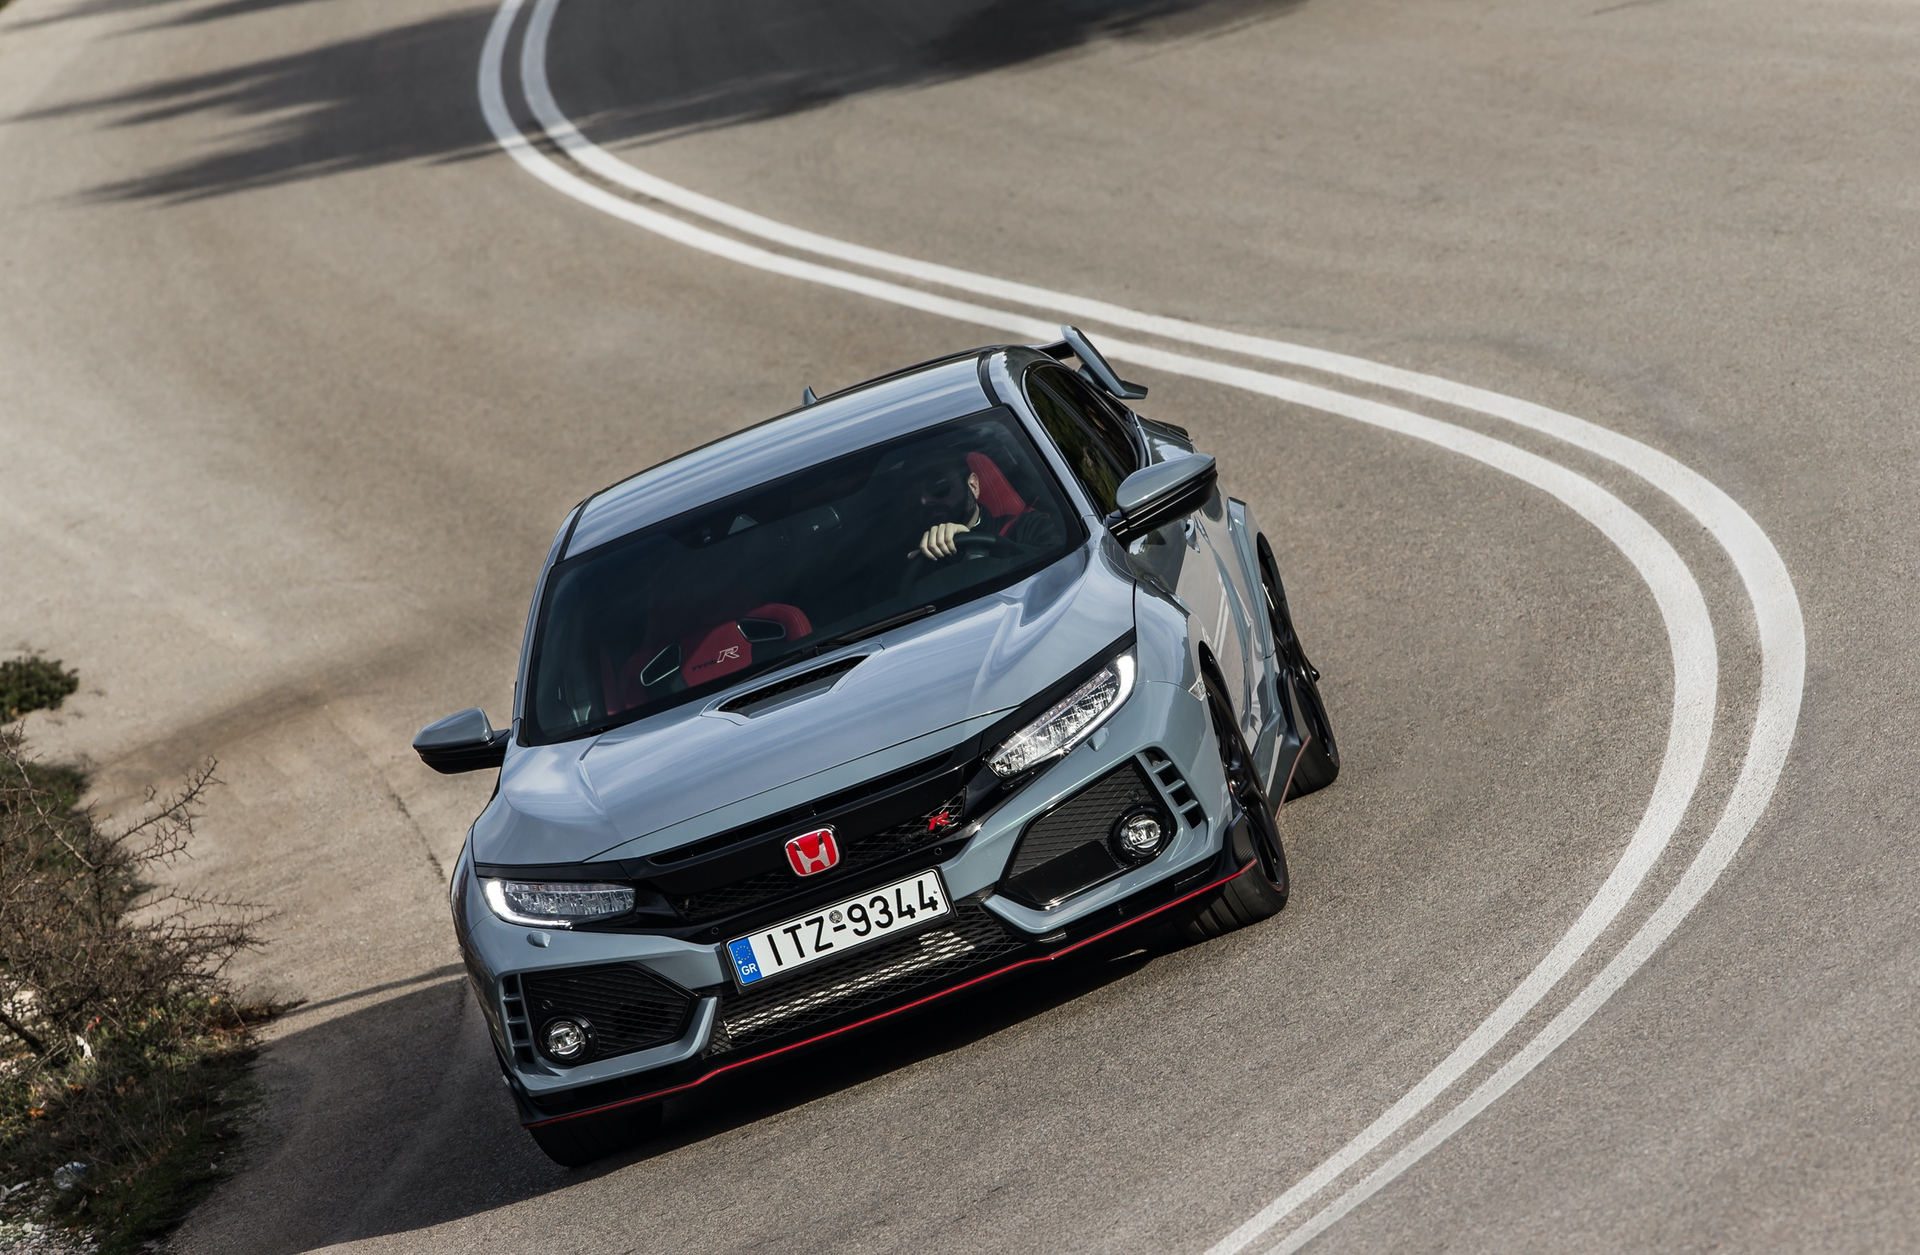 Track_Test_Honda_Civic_Type_R_088